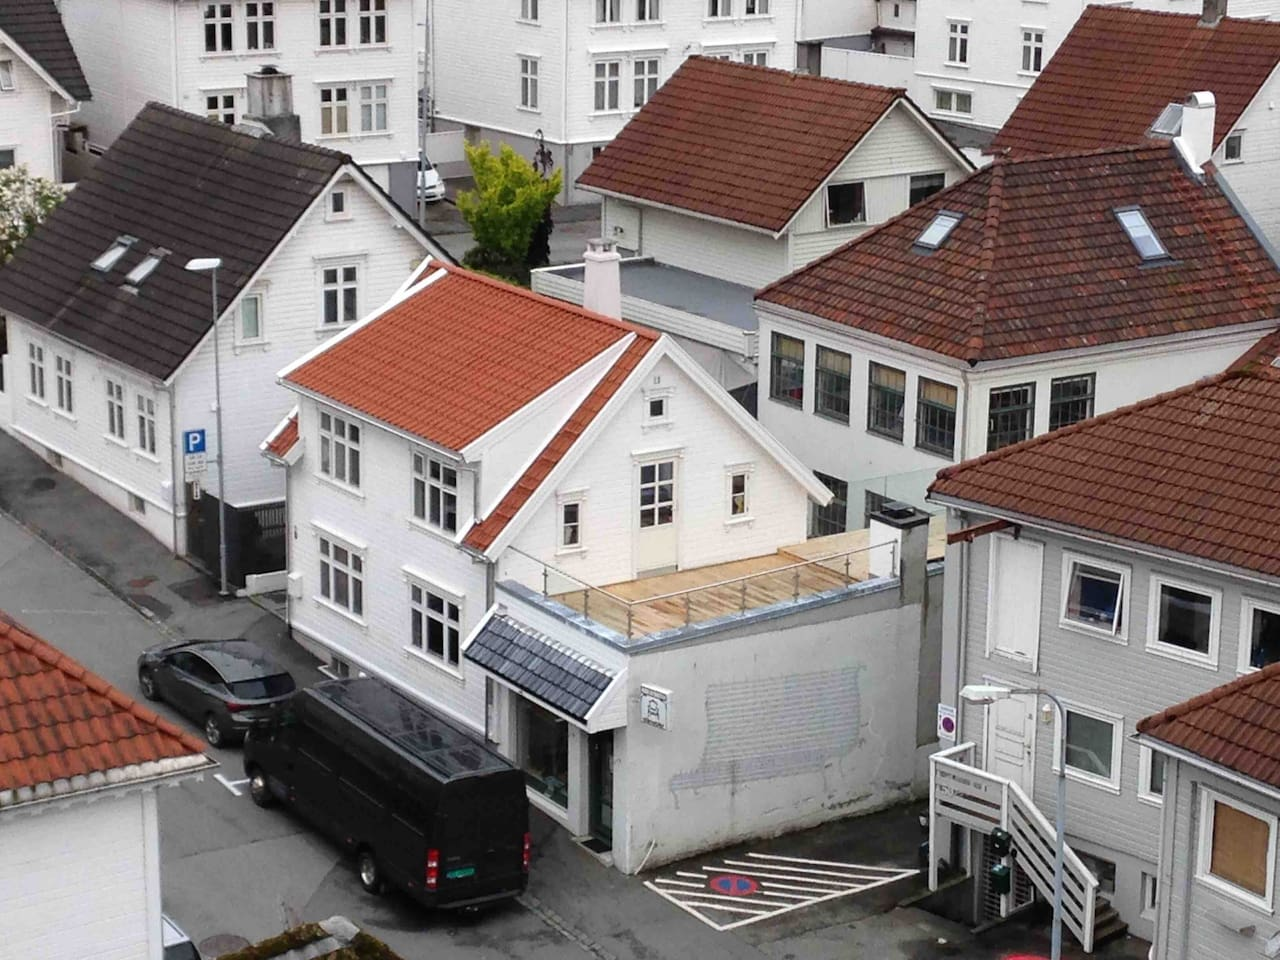 Our area of townhouses. Its called Vestre Platå and is just west of city centre, with a 2-3 minutes walk to harbour and city fasilities.  Its a quite area and very close to grocery store, supermarked and several cafe's, pubs and restaurants.